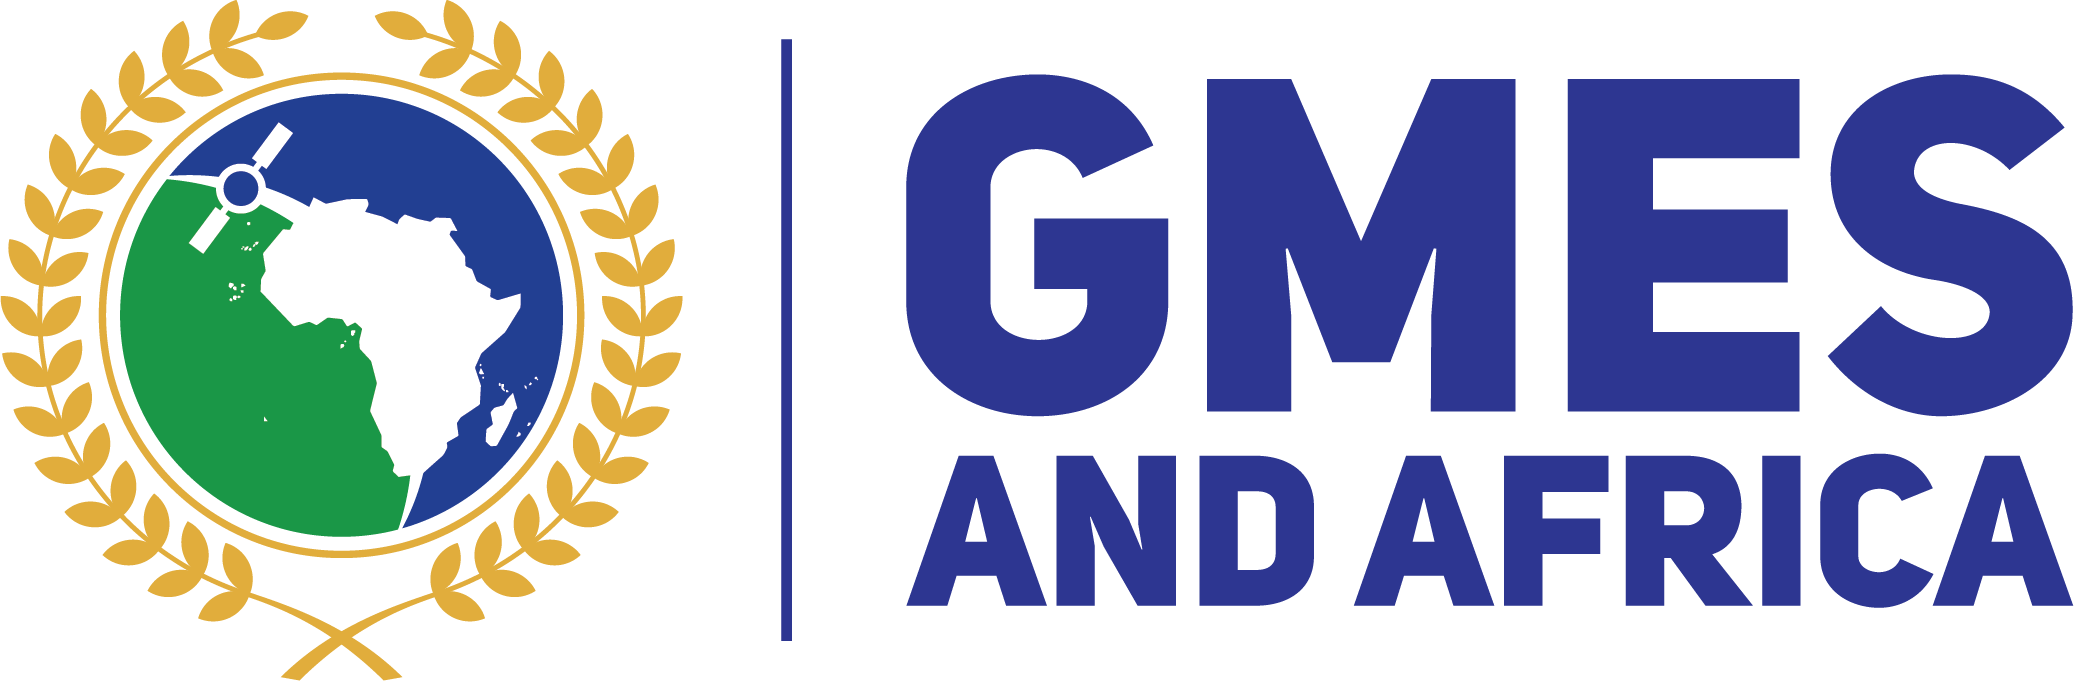 GMES and Africa Digital Learning Platform